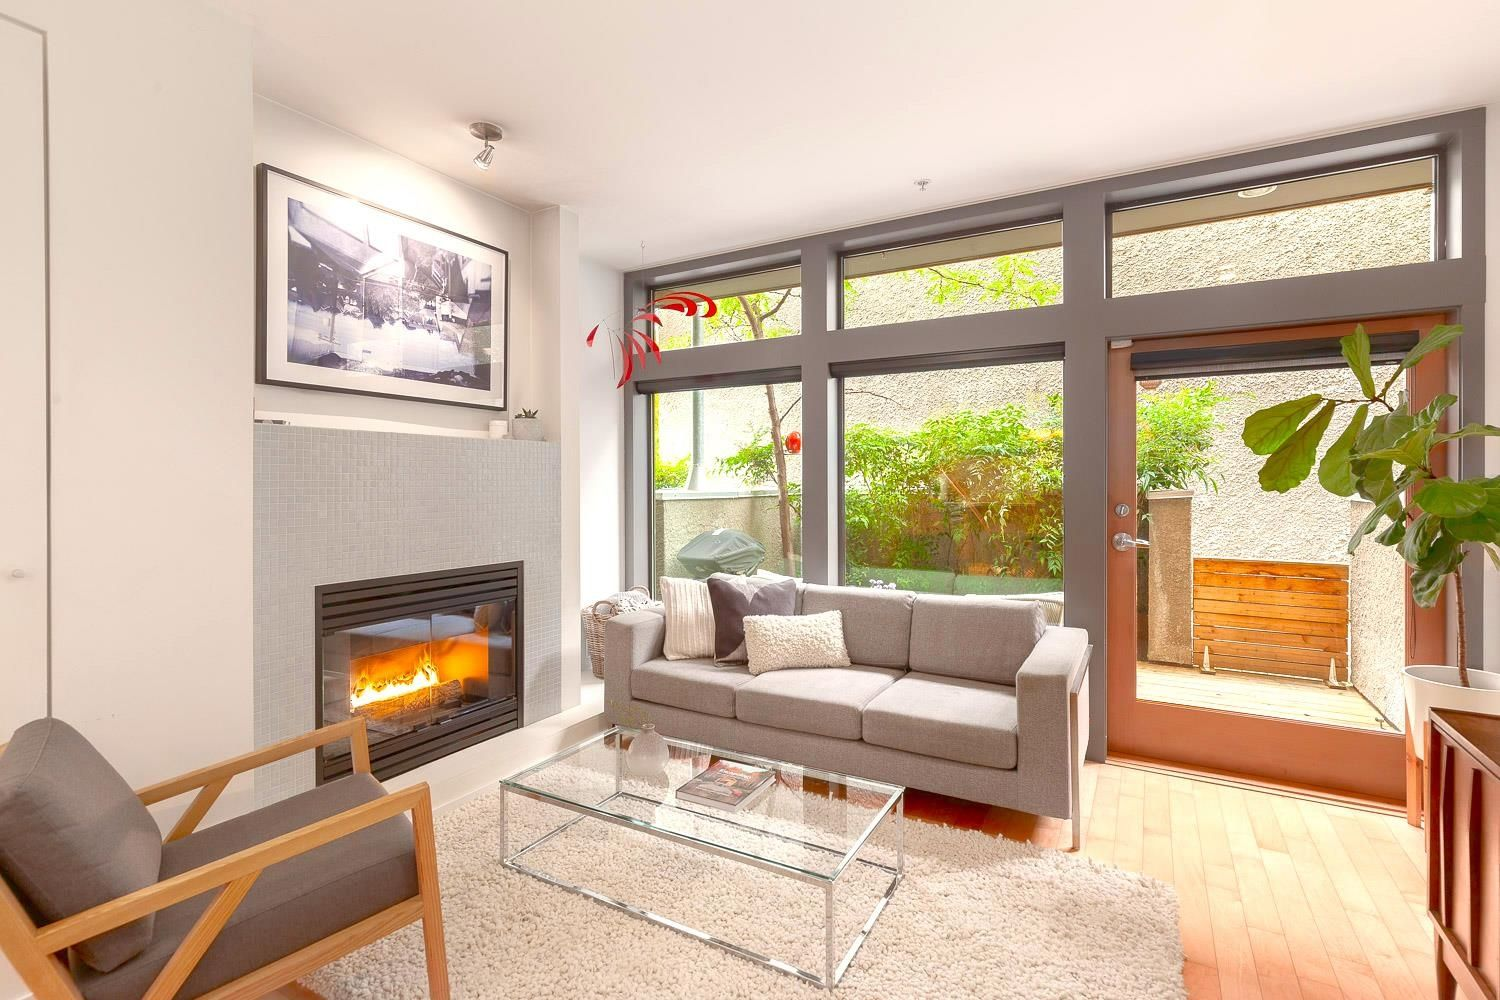 """Main Photo: 3121 PRINCE EDWARD Street in Vancouver: Mount Pleasant VE Townhouse for sale in """"PRINCE EDWARD RESIDENCES"""" (Vancouver East)  : MLS®# R2625202"""